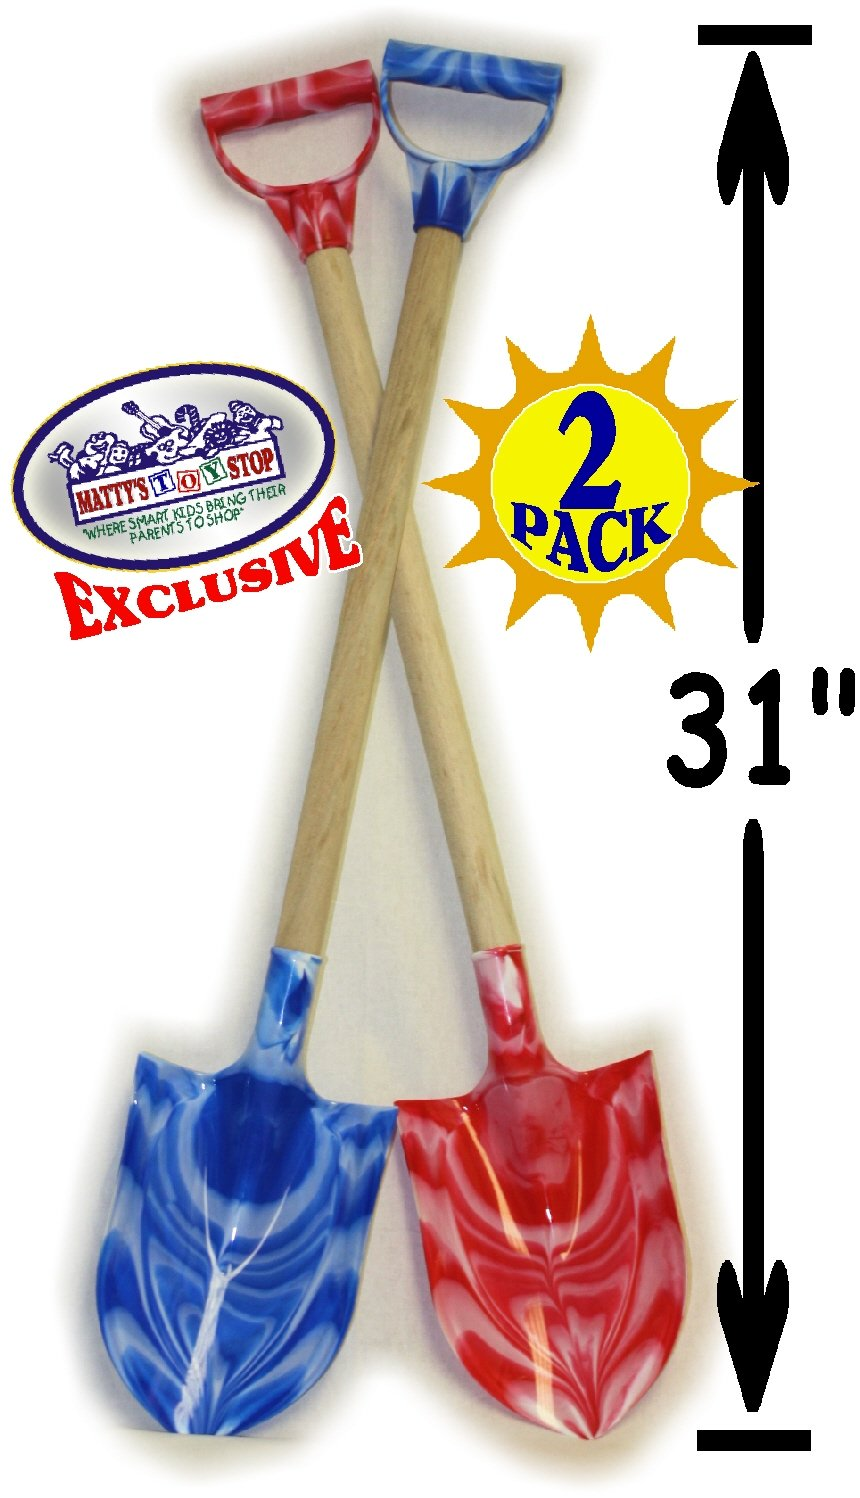 Matty's Toy Stop 31'' Heavy Duty Wooden Kids Sand Shovels with Plastic Spade & Handle (Blue Swirl & Pink Swirl) Twin Set Bundle - 2 Pack